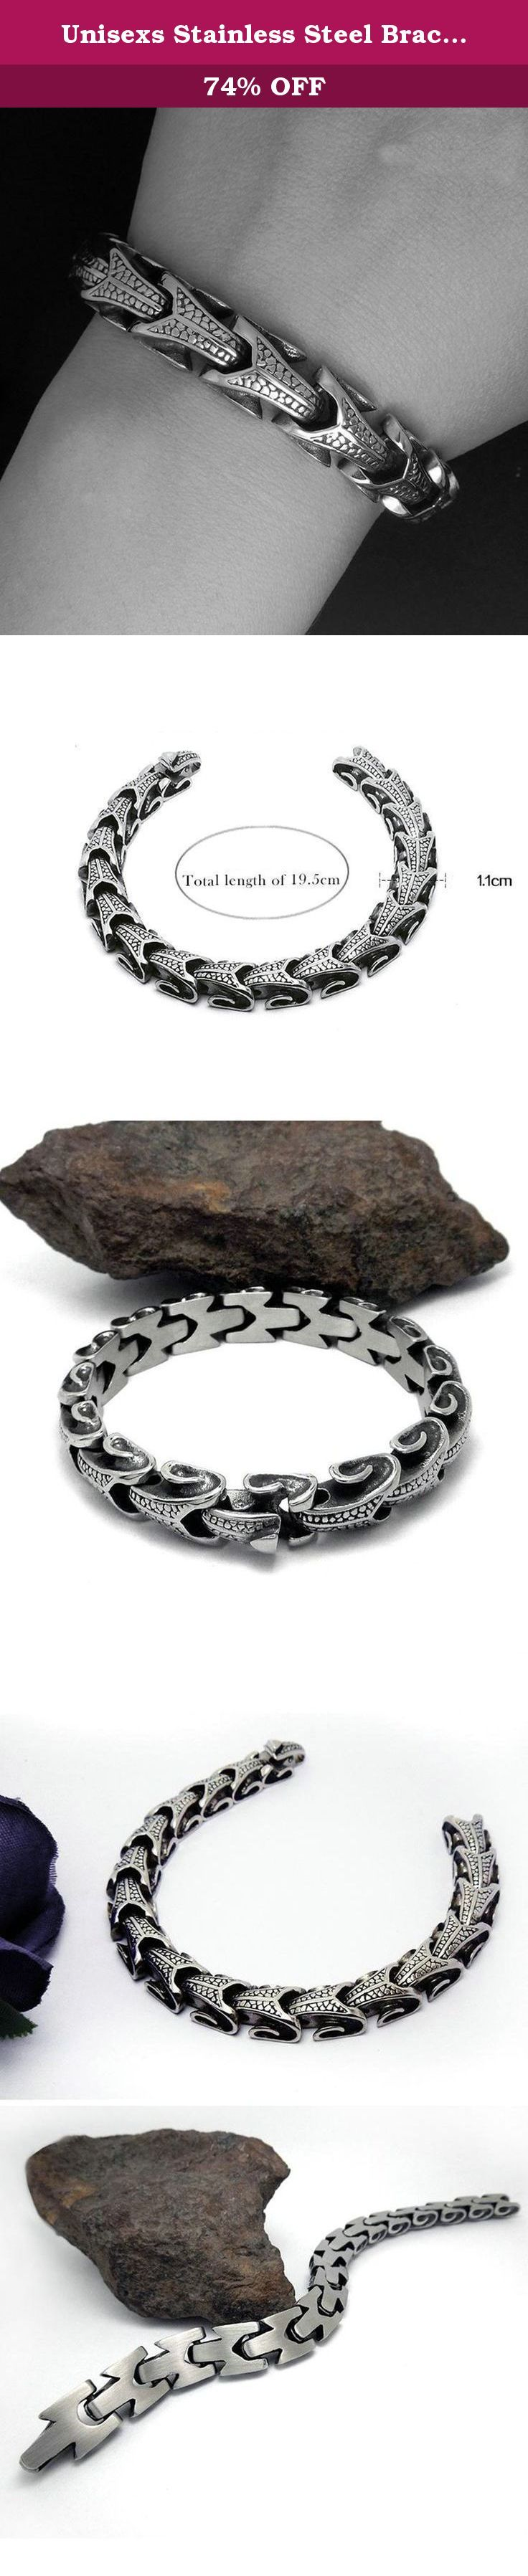 Unisexs Stainless Steel Bracelet Snake Chain Length 19CM Black - Adisaer Jewelry. This bracelet is a perfect gift for anyone. This bracelet is made of durable highly polished 100% stainless steel. Give it to your loved one, or treat yourself for a trendy bracelet style. The bracelet features a modern design showcasing a silver-tone snake chain and simple yet classic style. A special clasp allows to lock the bracelet securely around your wrist. This bracelet will make a wonderful addition…